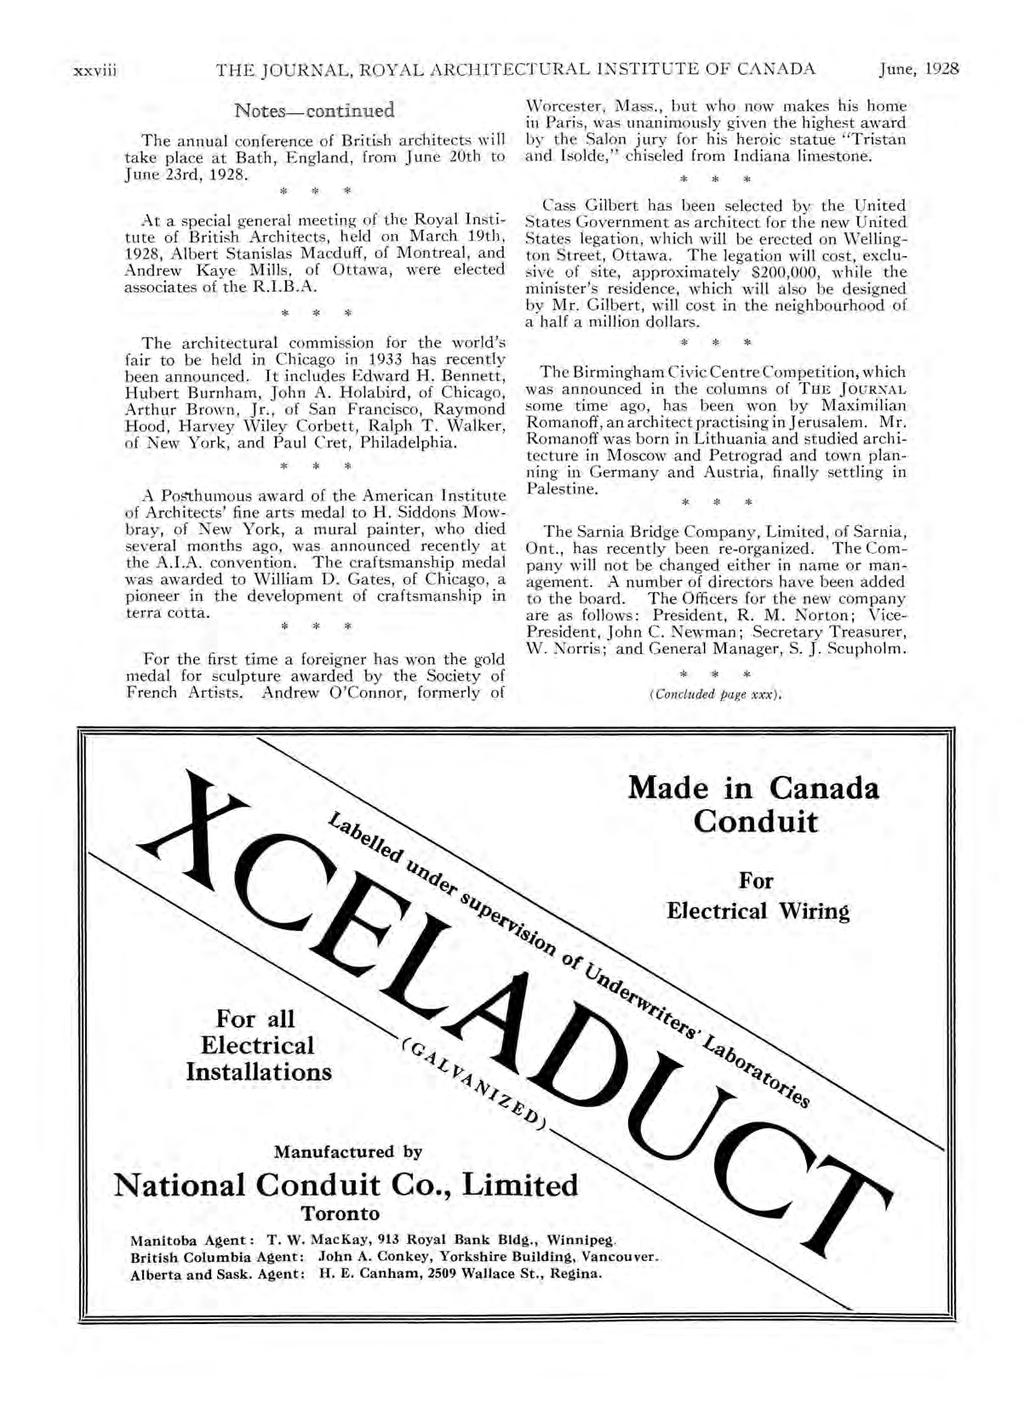 The Journal Royal Architectural Institute Of Canada June Vol V No Wiring Money Rbc Xxv Ill Ar Chitectural I Nstitute 1928 Notes